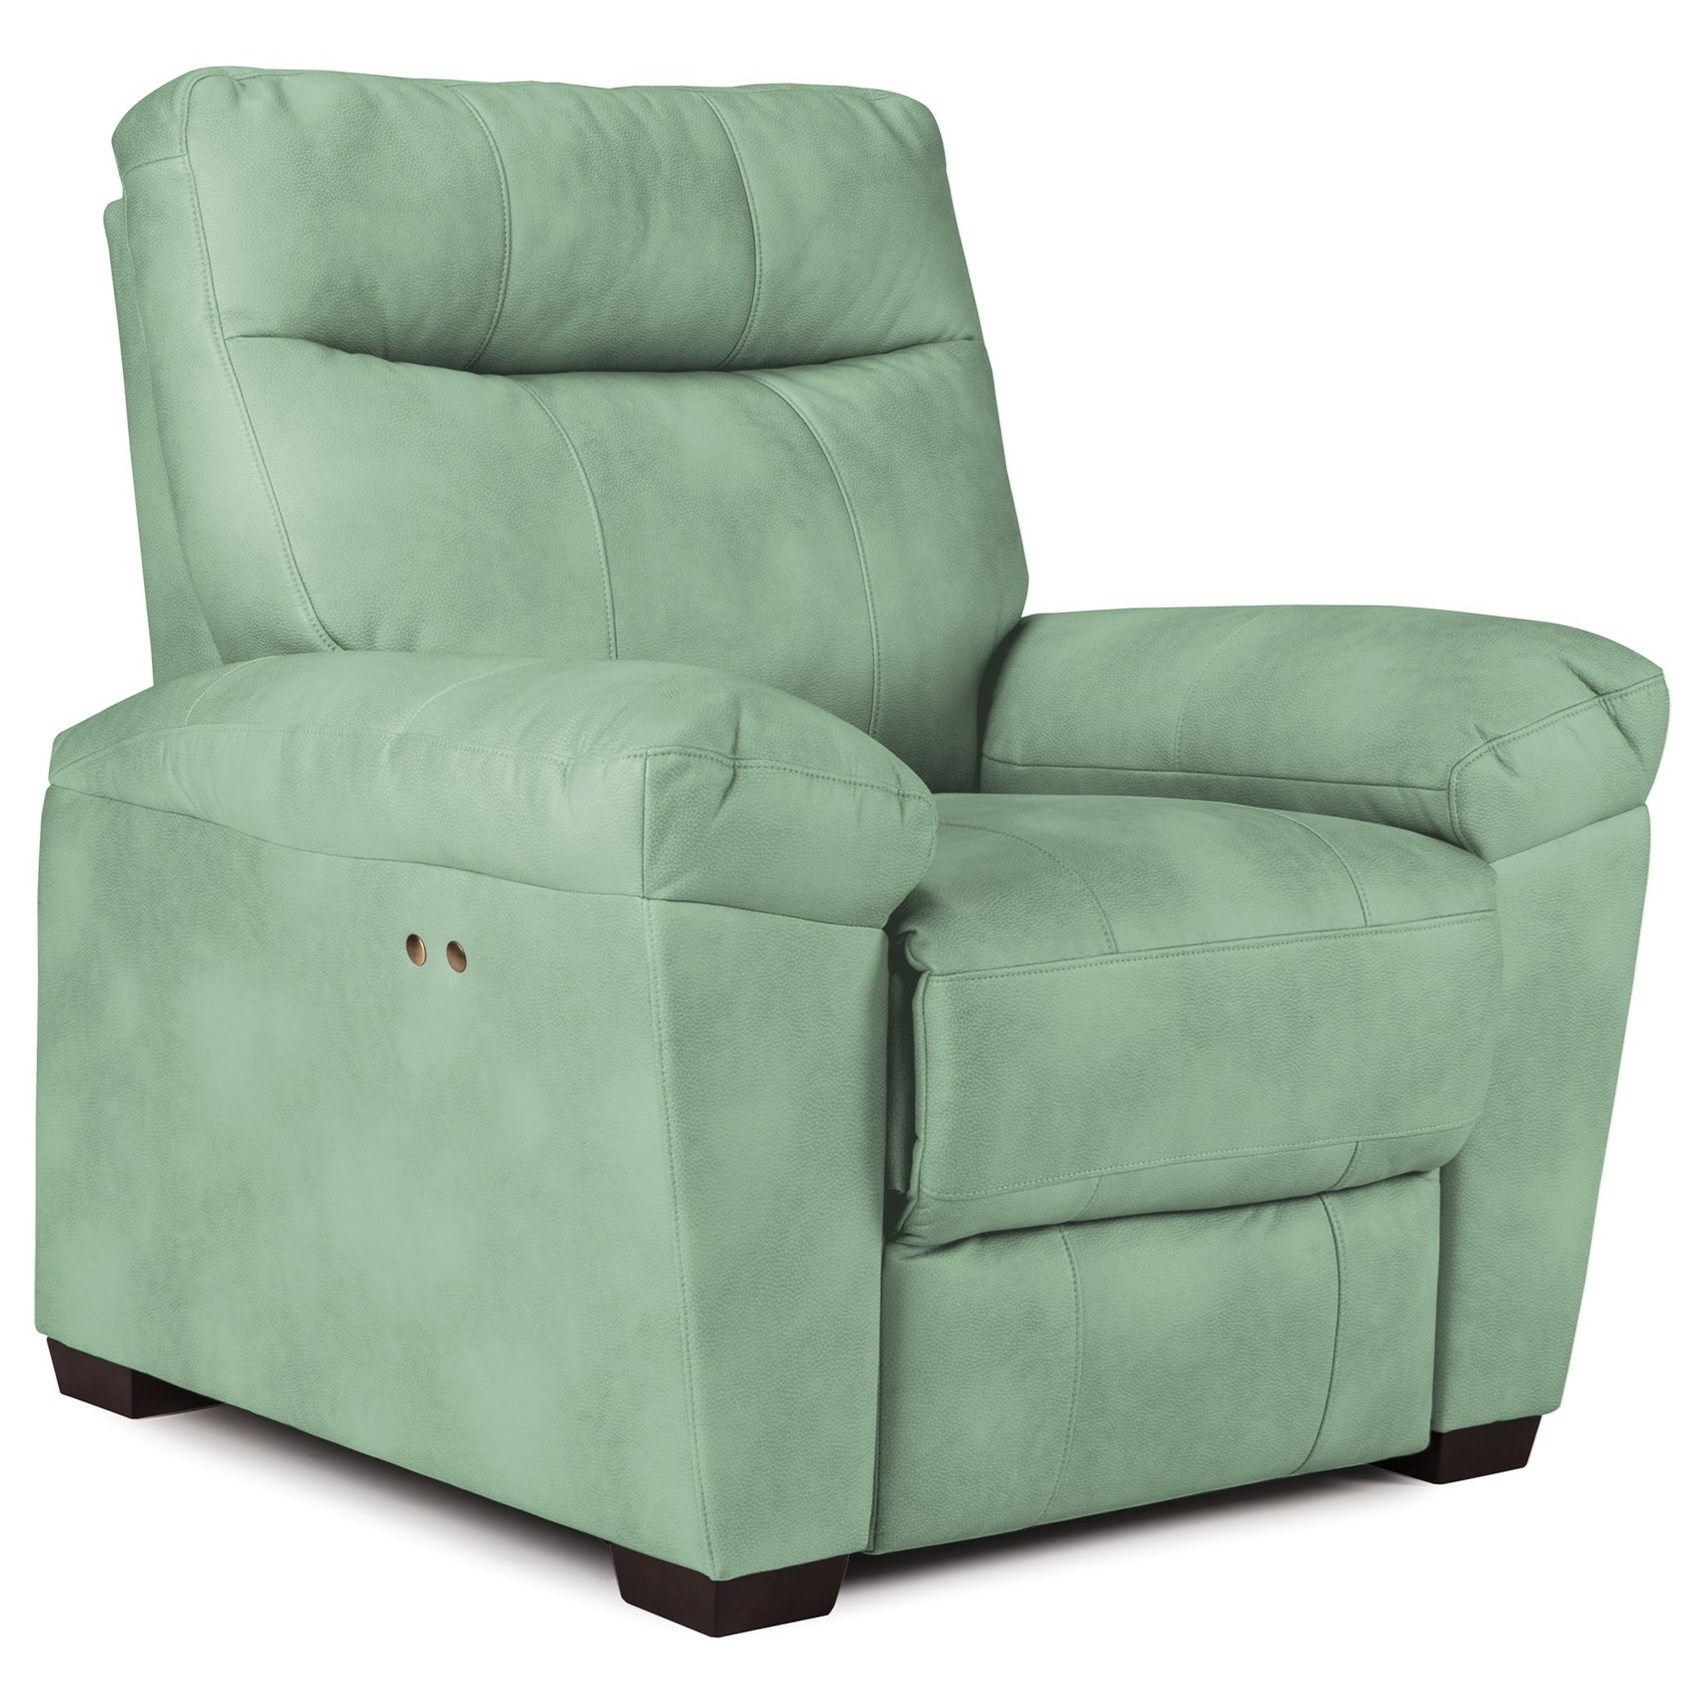 Best Home Furnishings Makena Power Space Saver Recliner - Item Number: -850709570-28592U